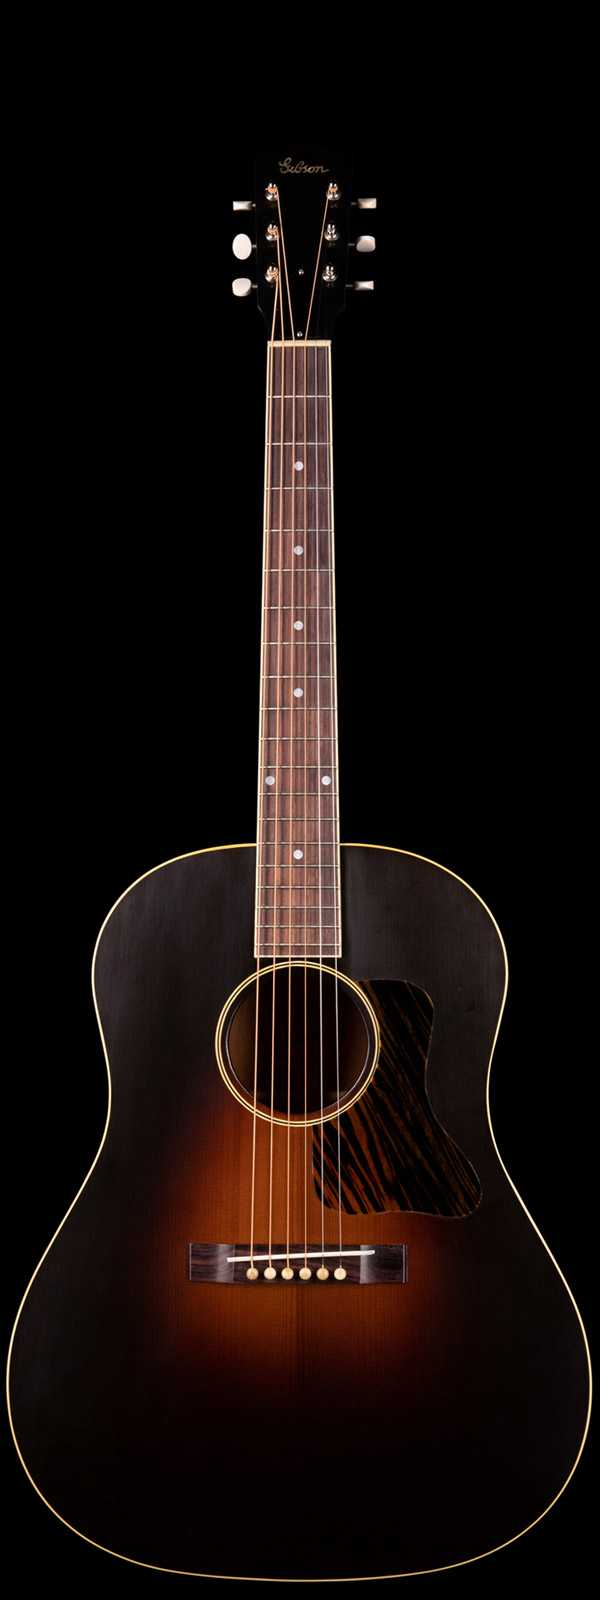 Gibson Custom Shop 1934 Jumbo Thermally Aged Redwood Top Vintage Sunburst VOS